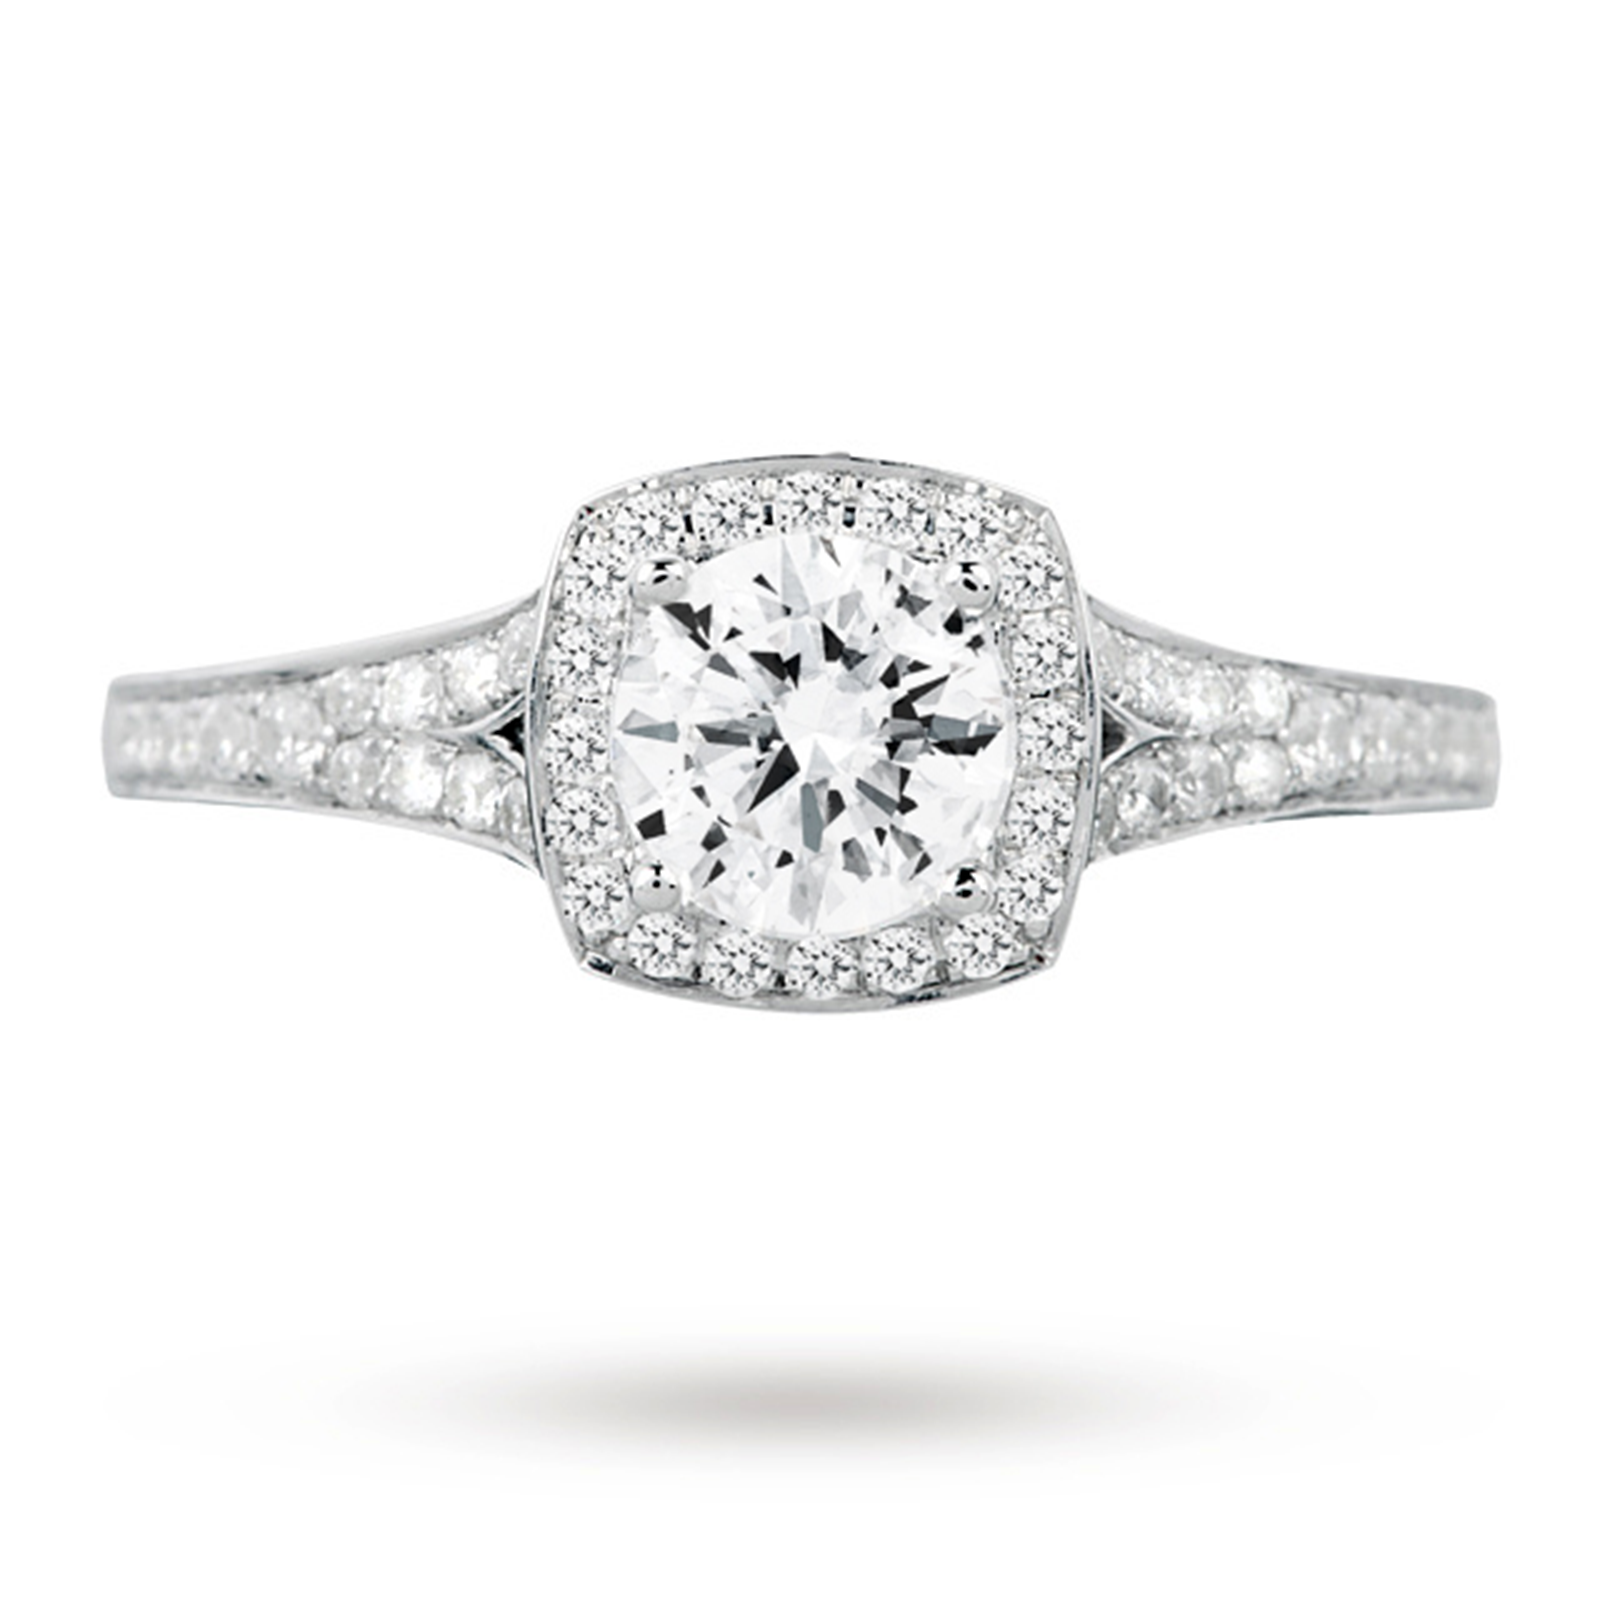 18ct White Gold 1.00ct 88 Facet Diamond Ring With Diamond ...